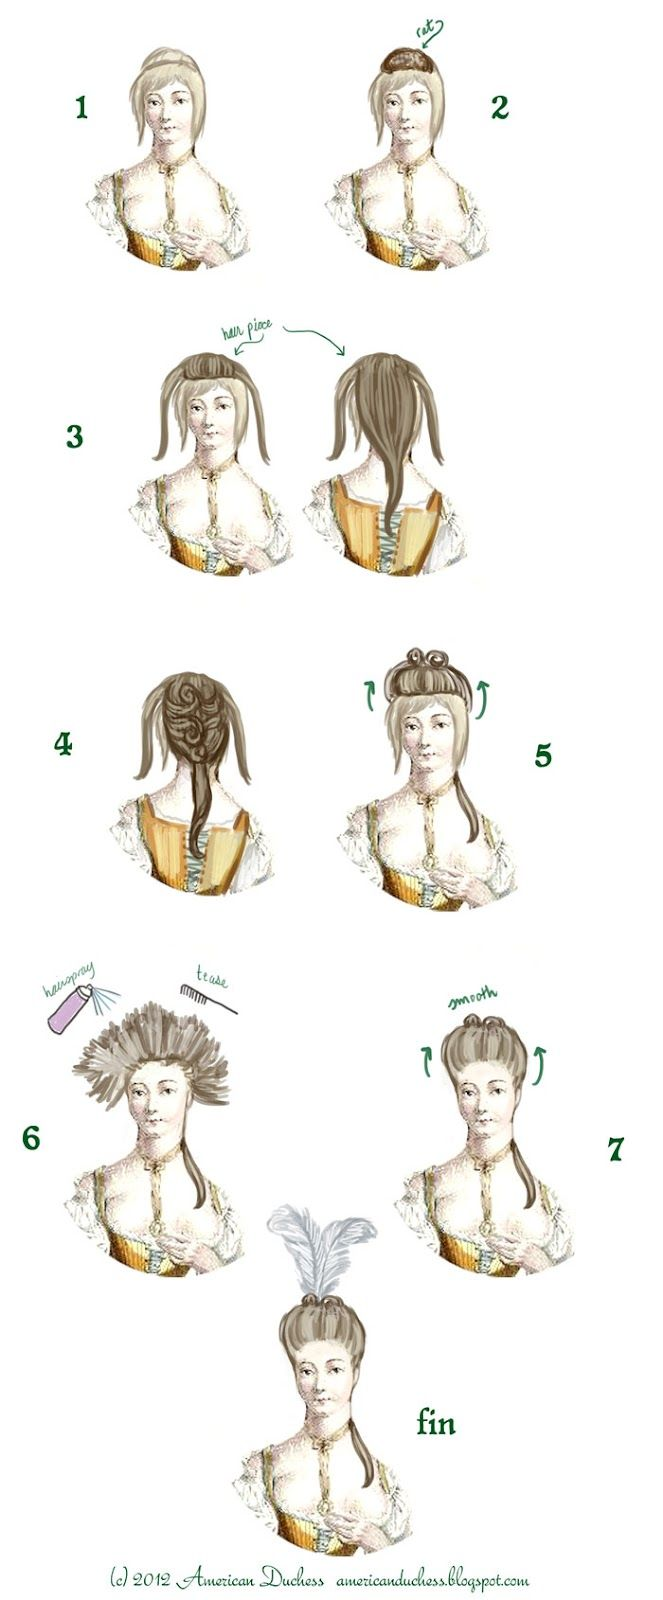 best images about th century hair make up toilette on american duchess is a costume blog designed to educate and entertain those interested in learning more about c fashion and costuming of other centuries